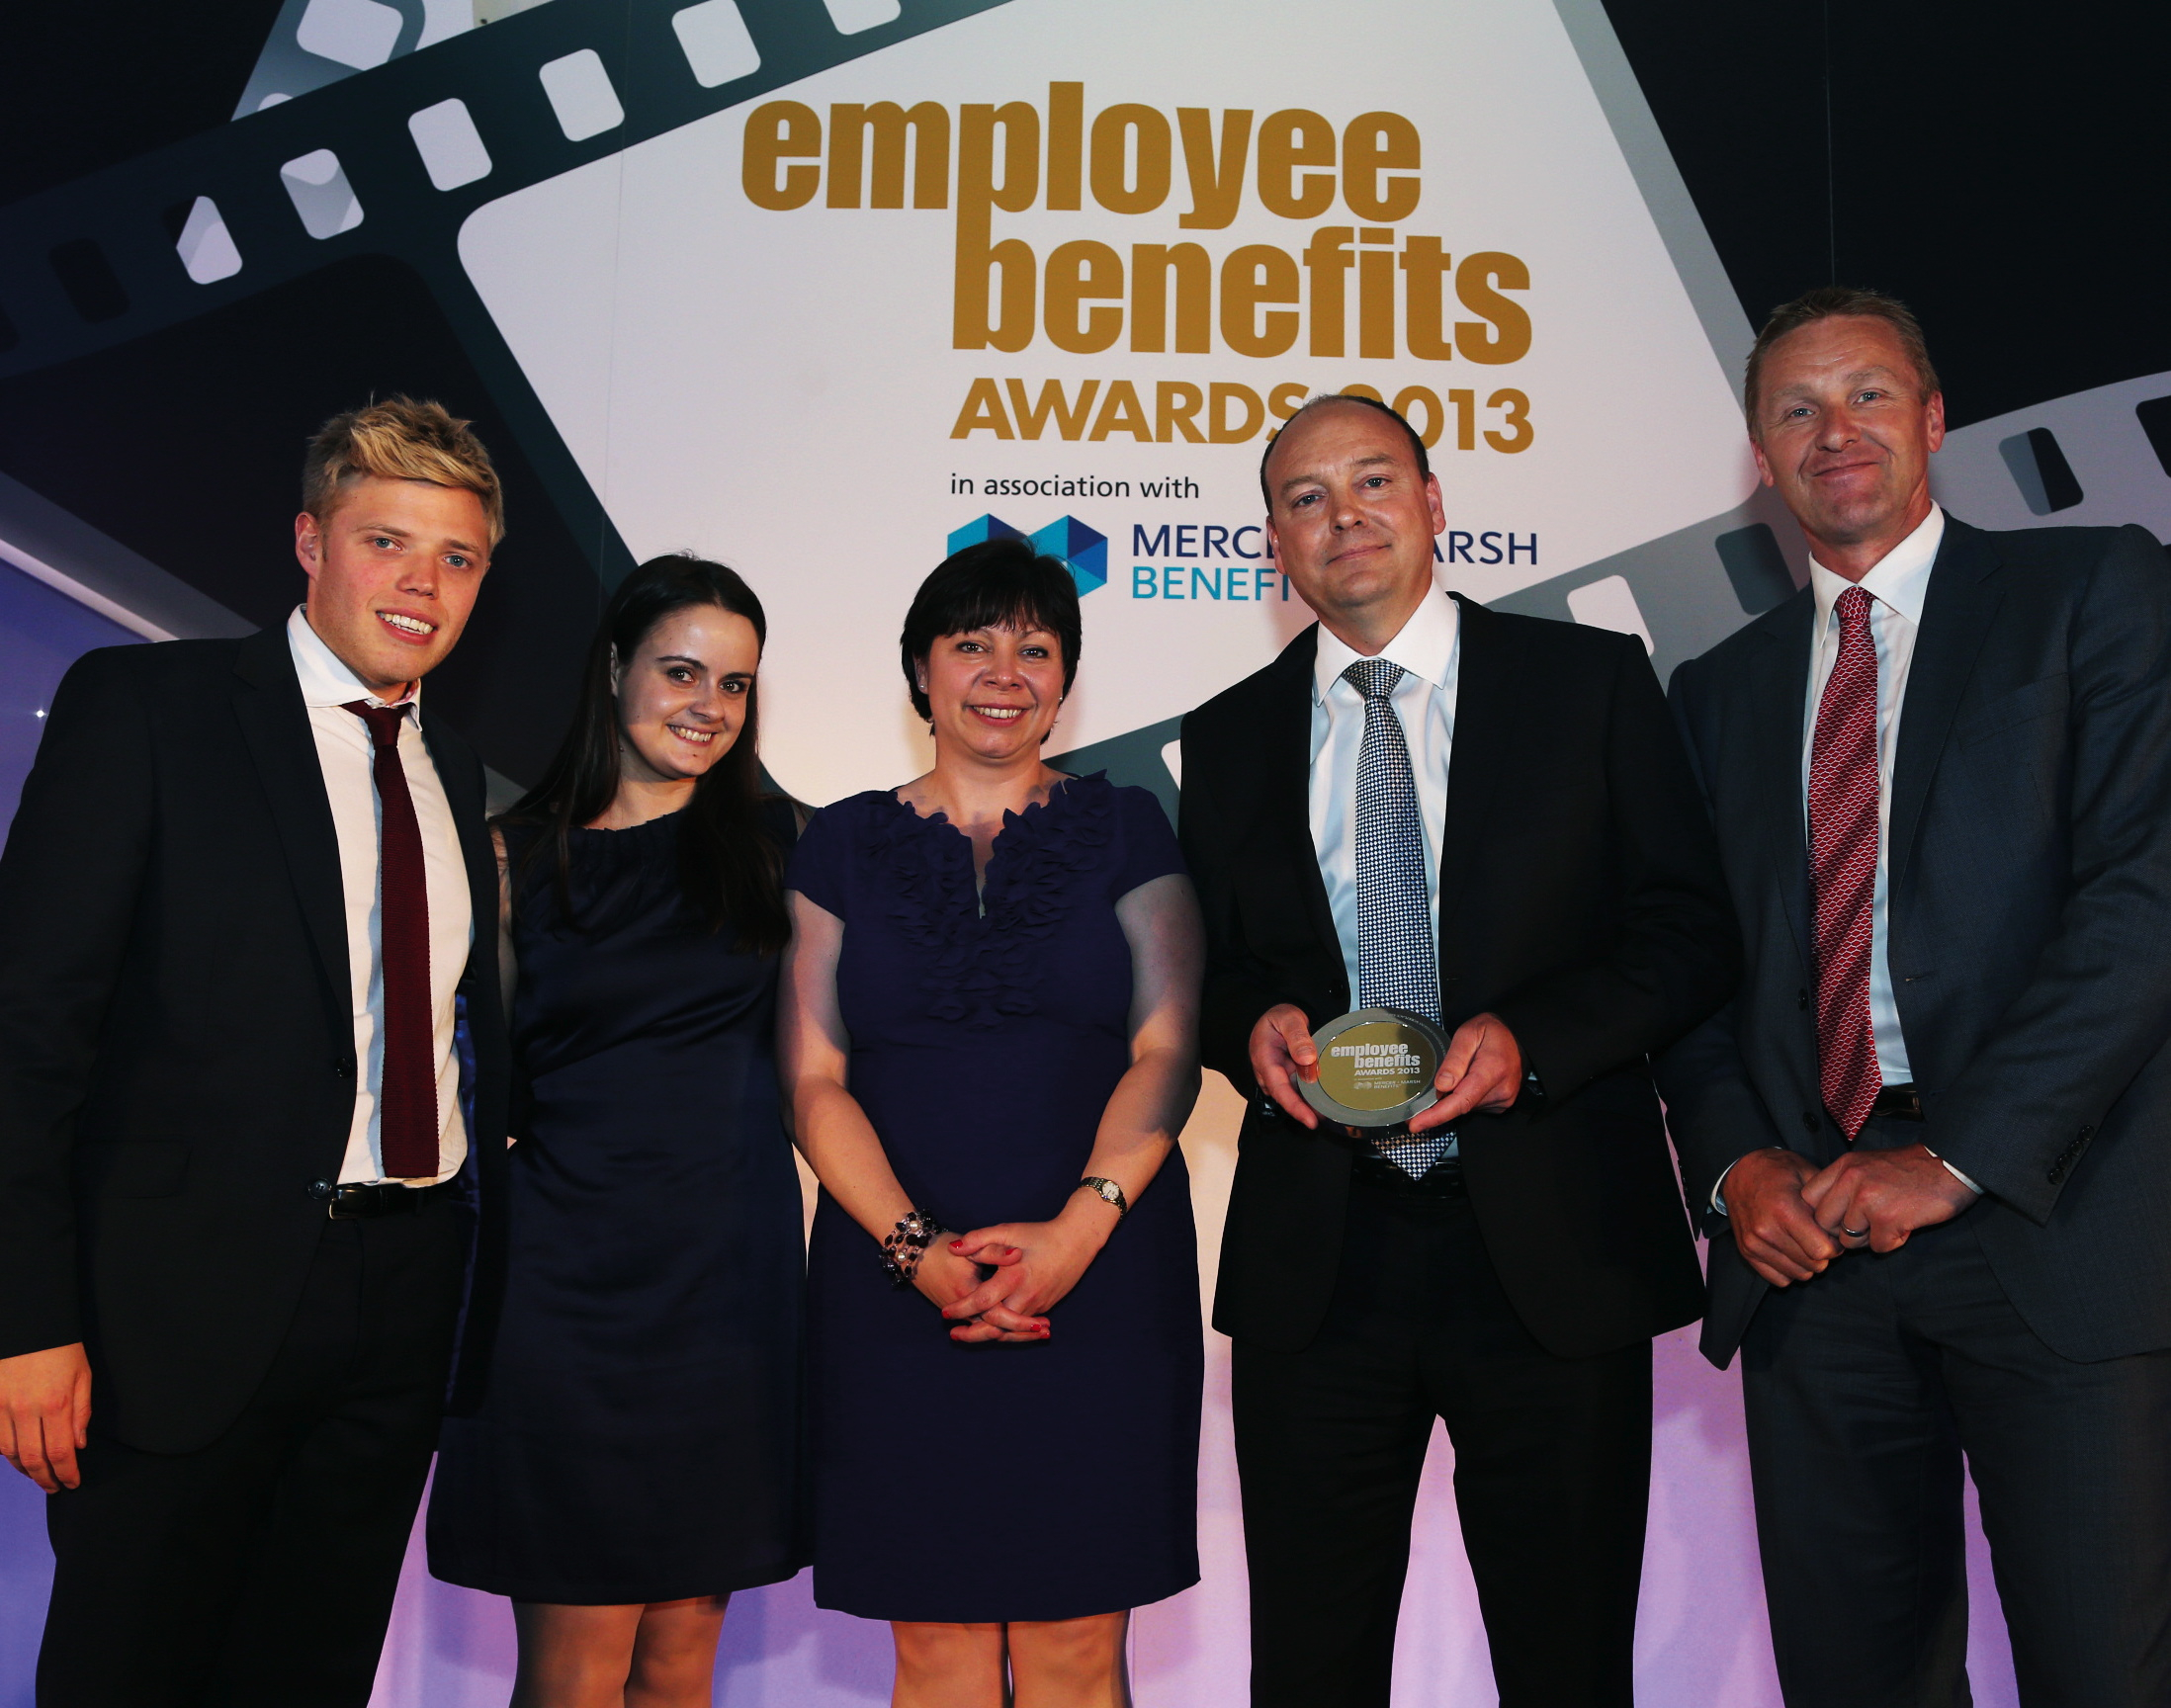 Award winners at Employee Benefits Awards 2013